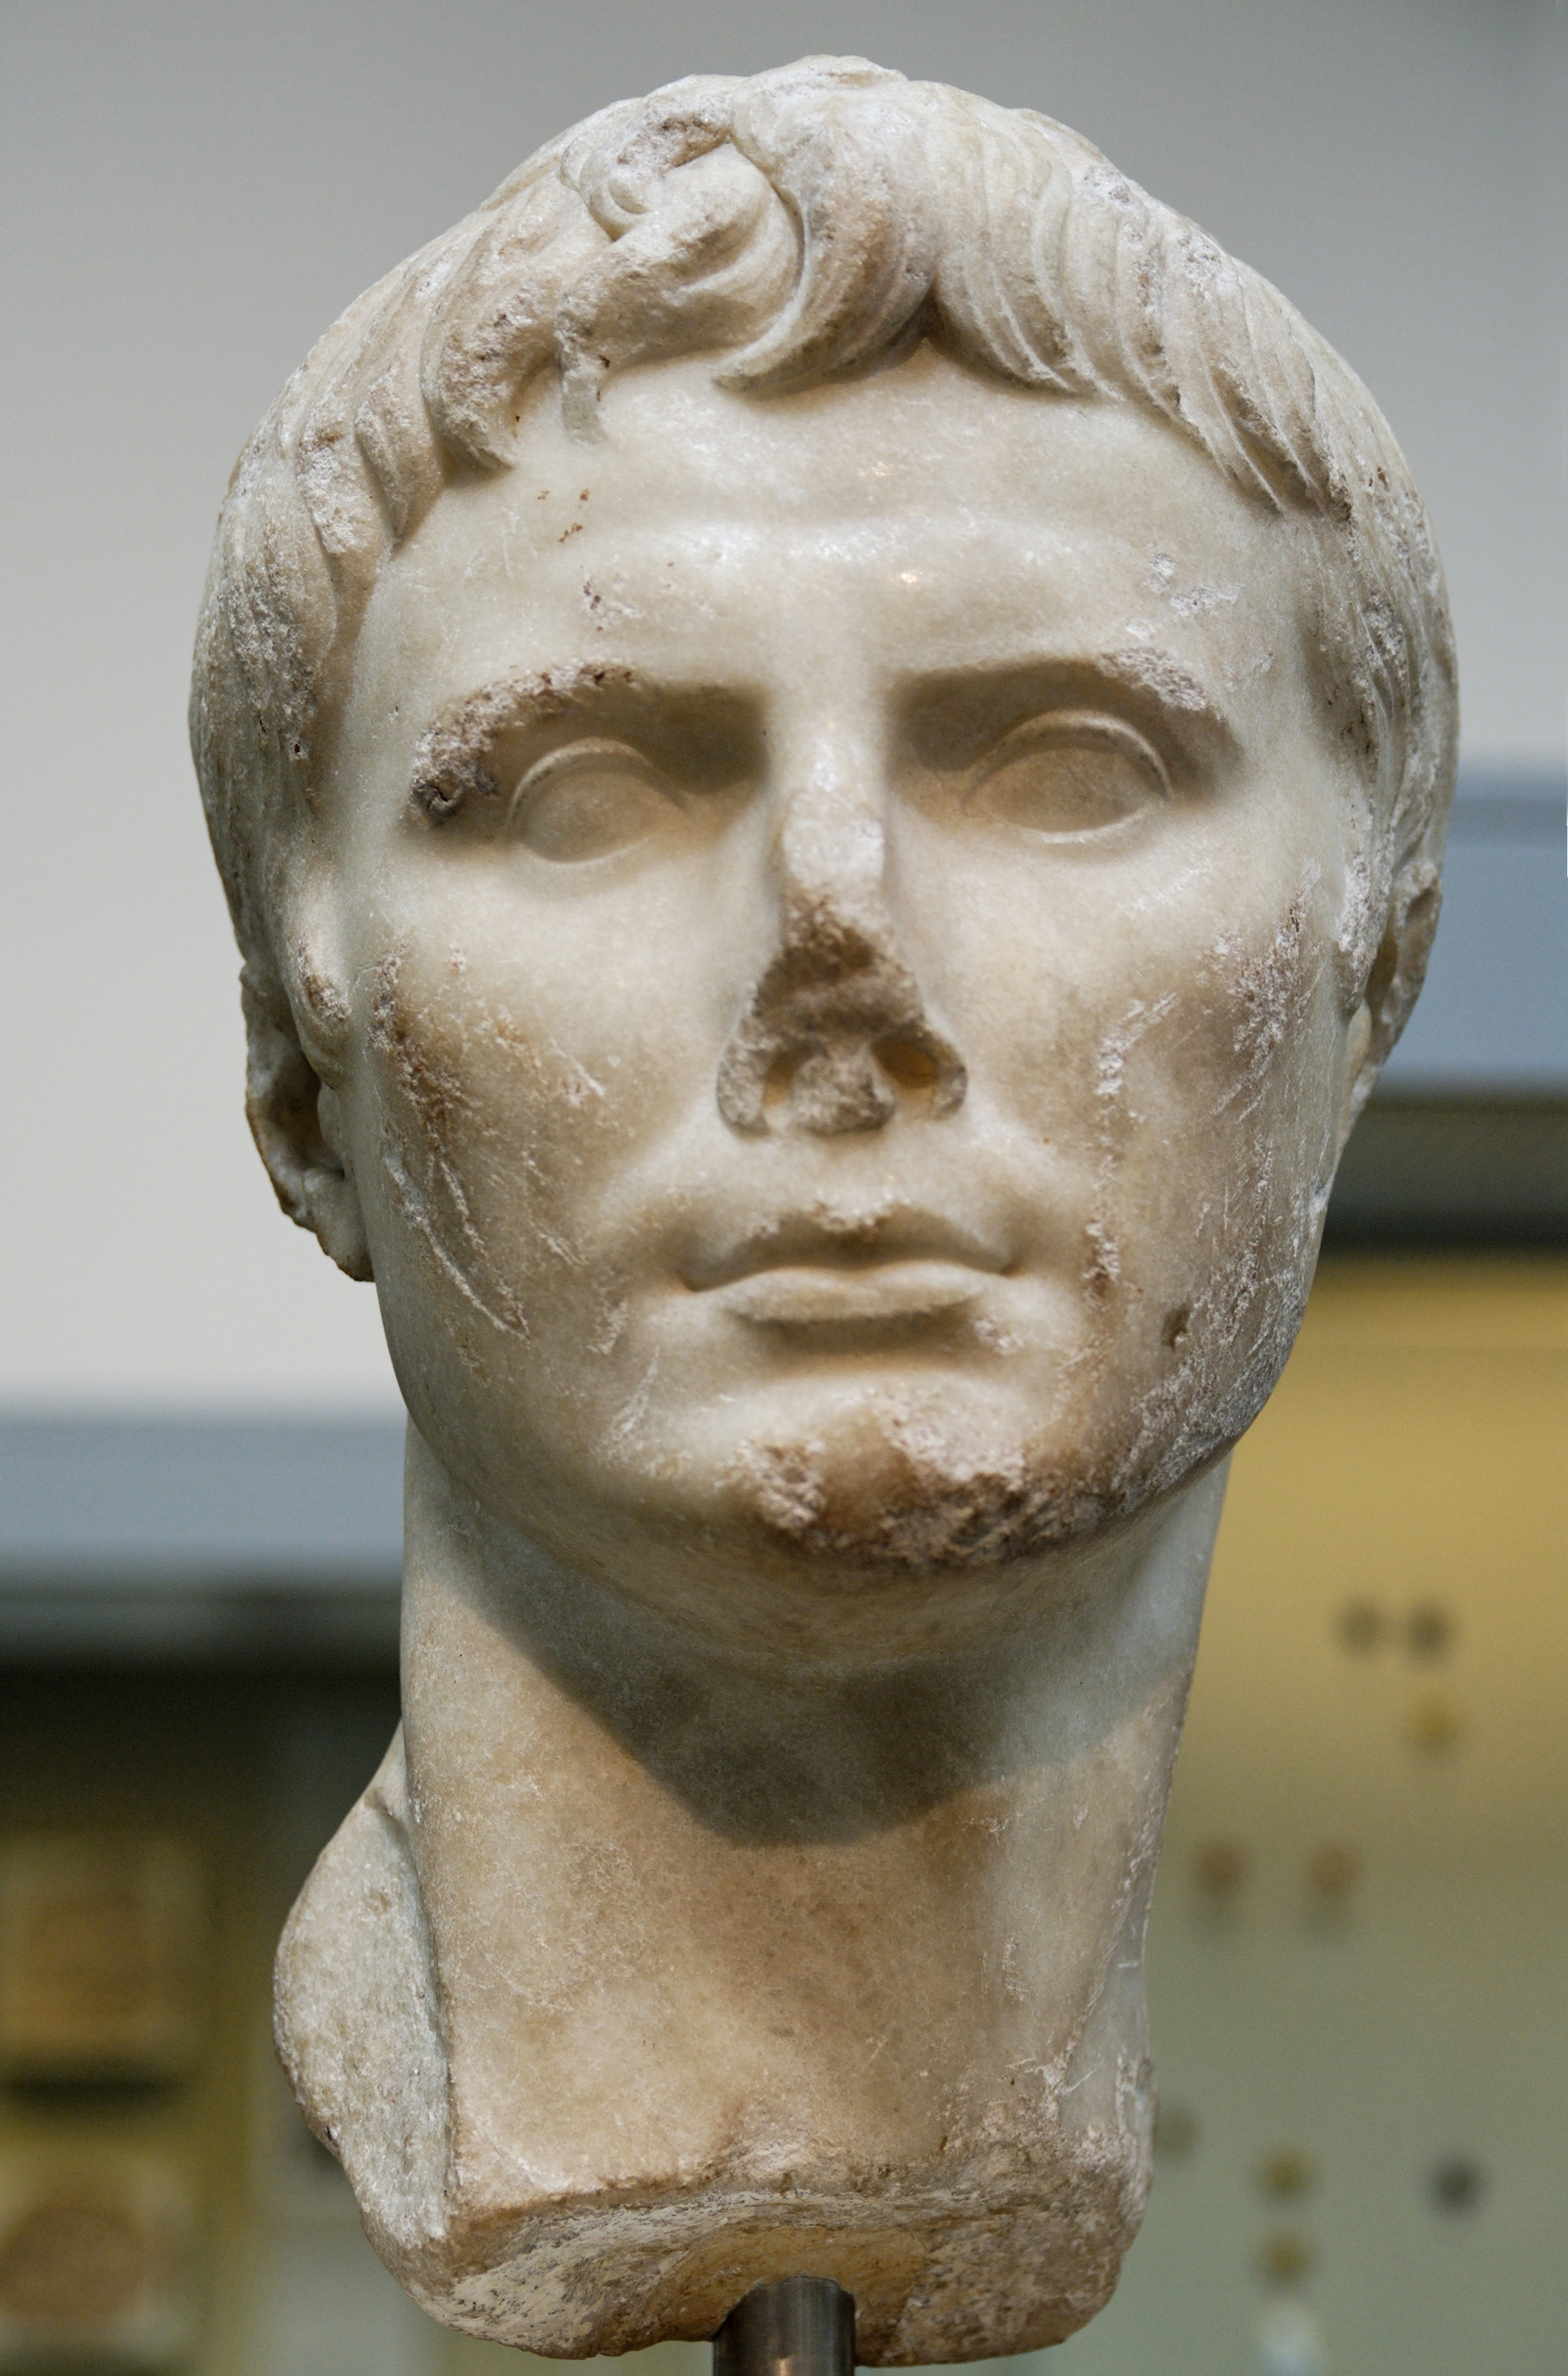 an analysis of the achievements of caesar augustus in ancient rome